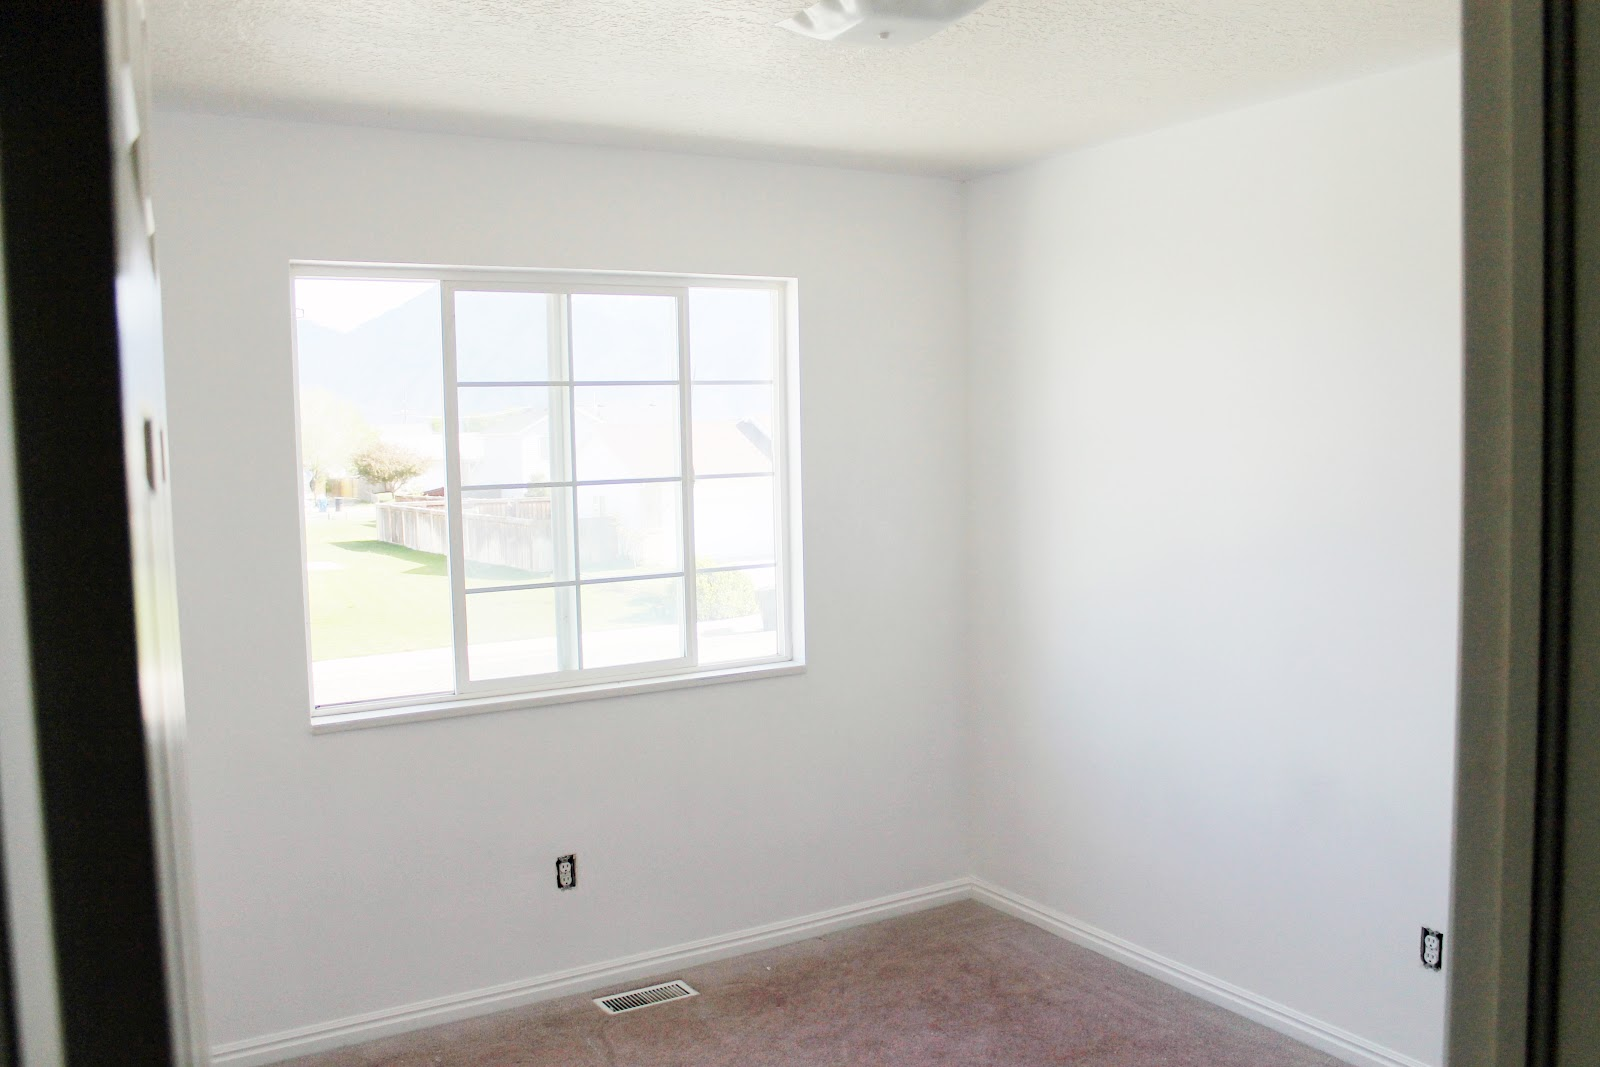 Ceiling Paint How To A Reviews Ratings